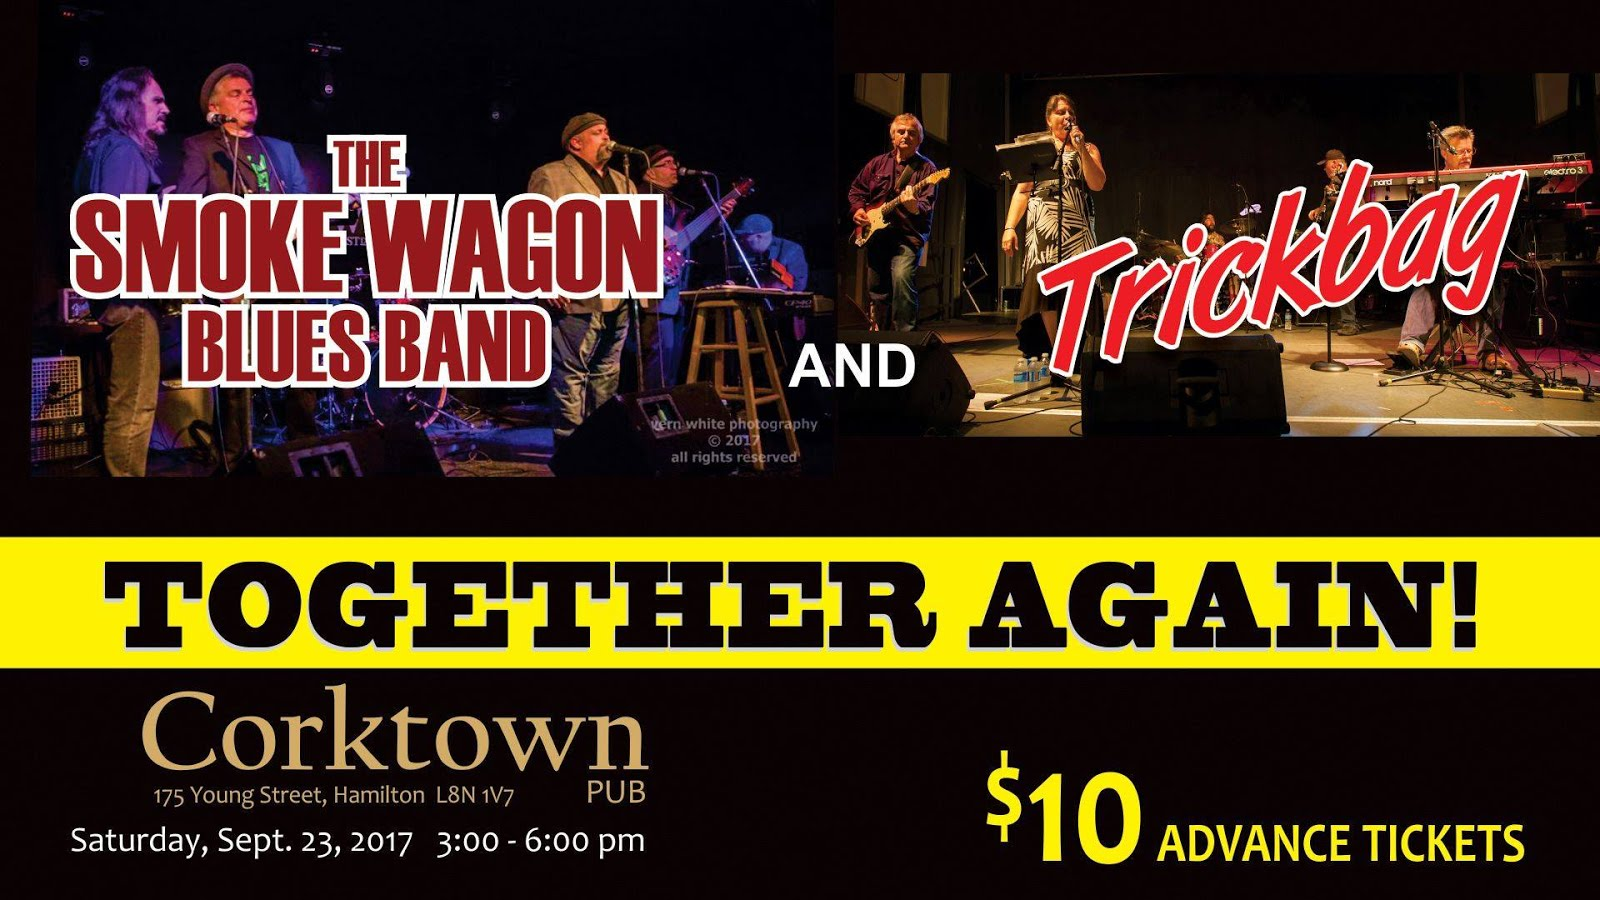 Trickbag + Smoke Wagon Blues Band Rock the The Corktown